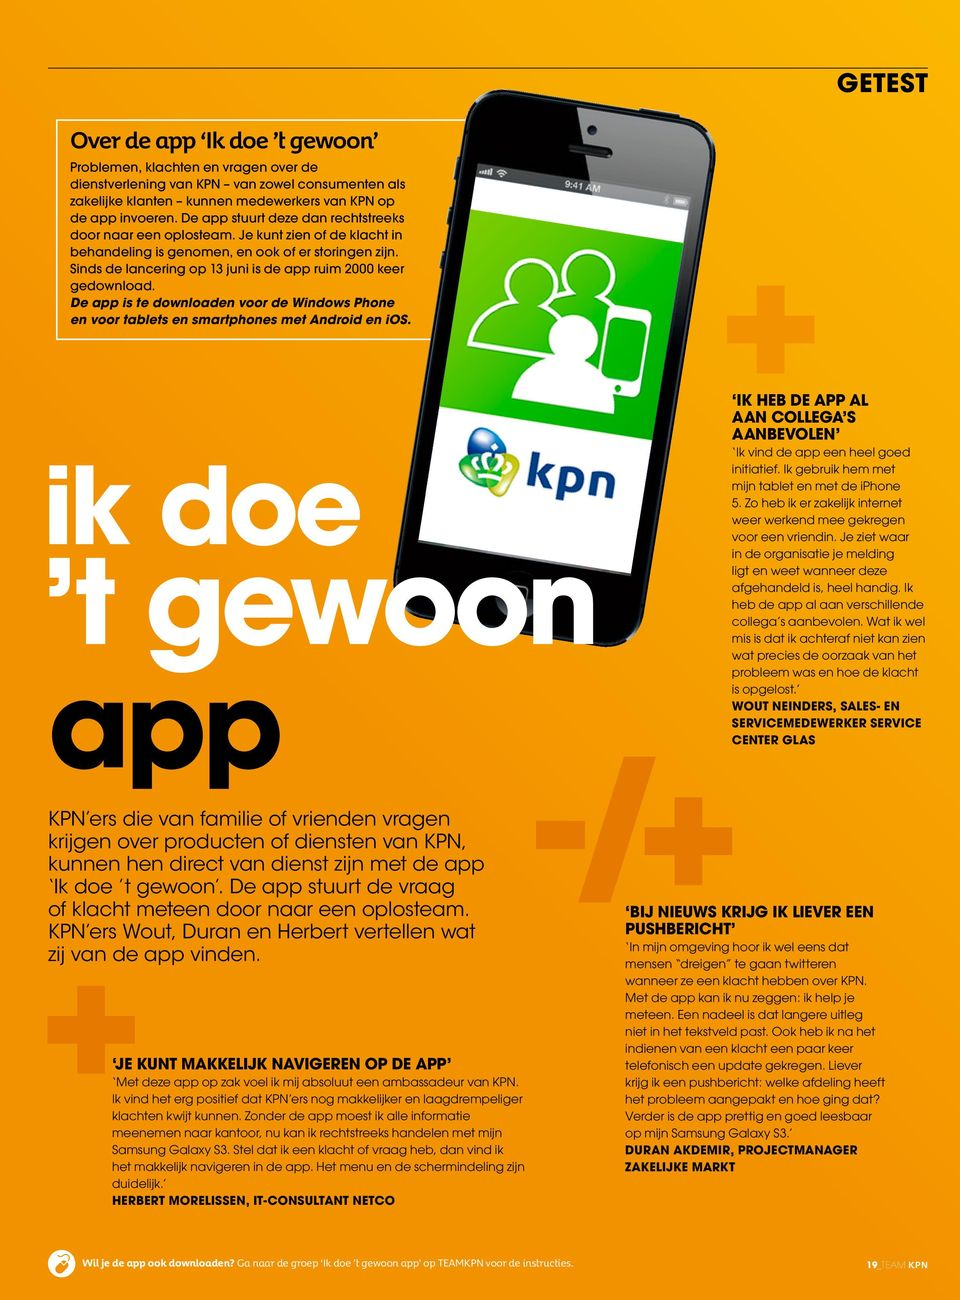 Sinds de lancering op 13 juni is de app ruim 2000 keer gedownload. De app is te downloaden voor de Windows Phone en voor tablets en smartphones met Android en ios.